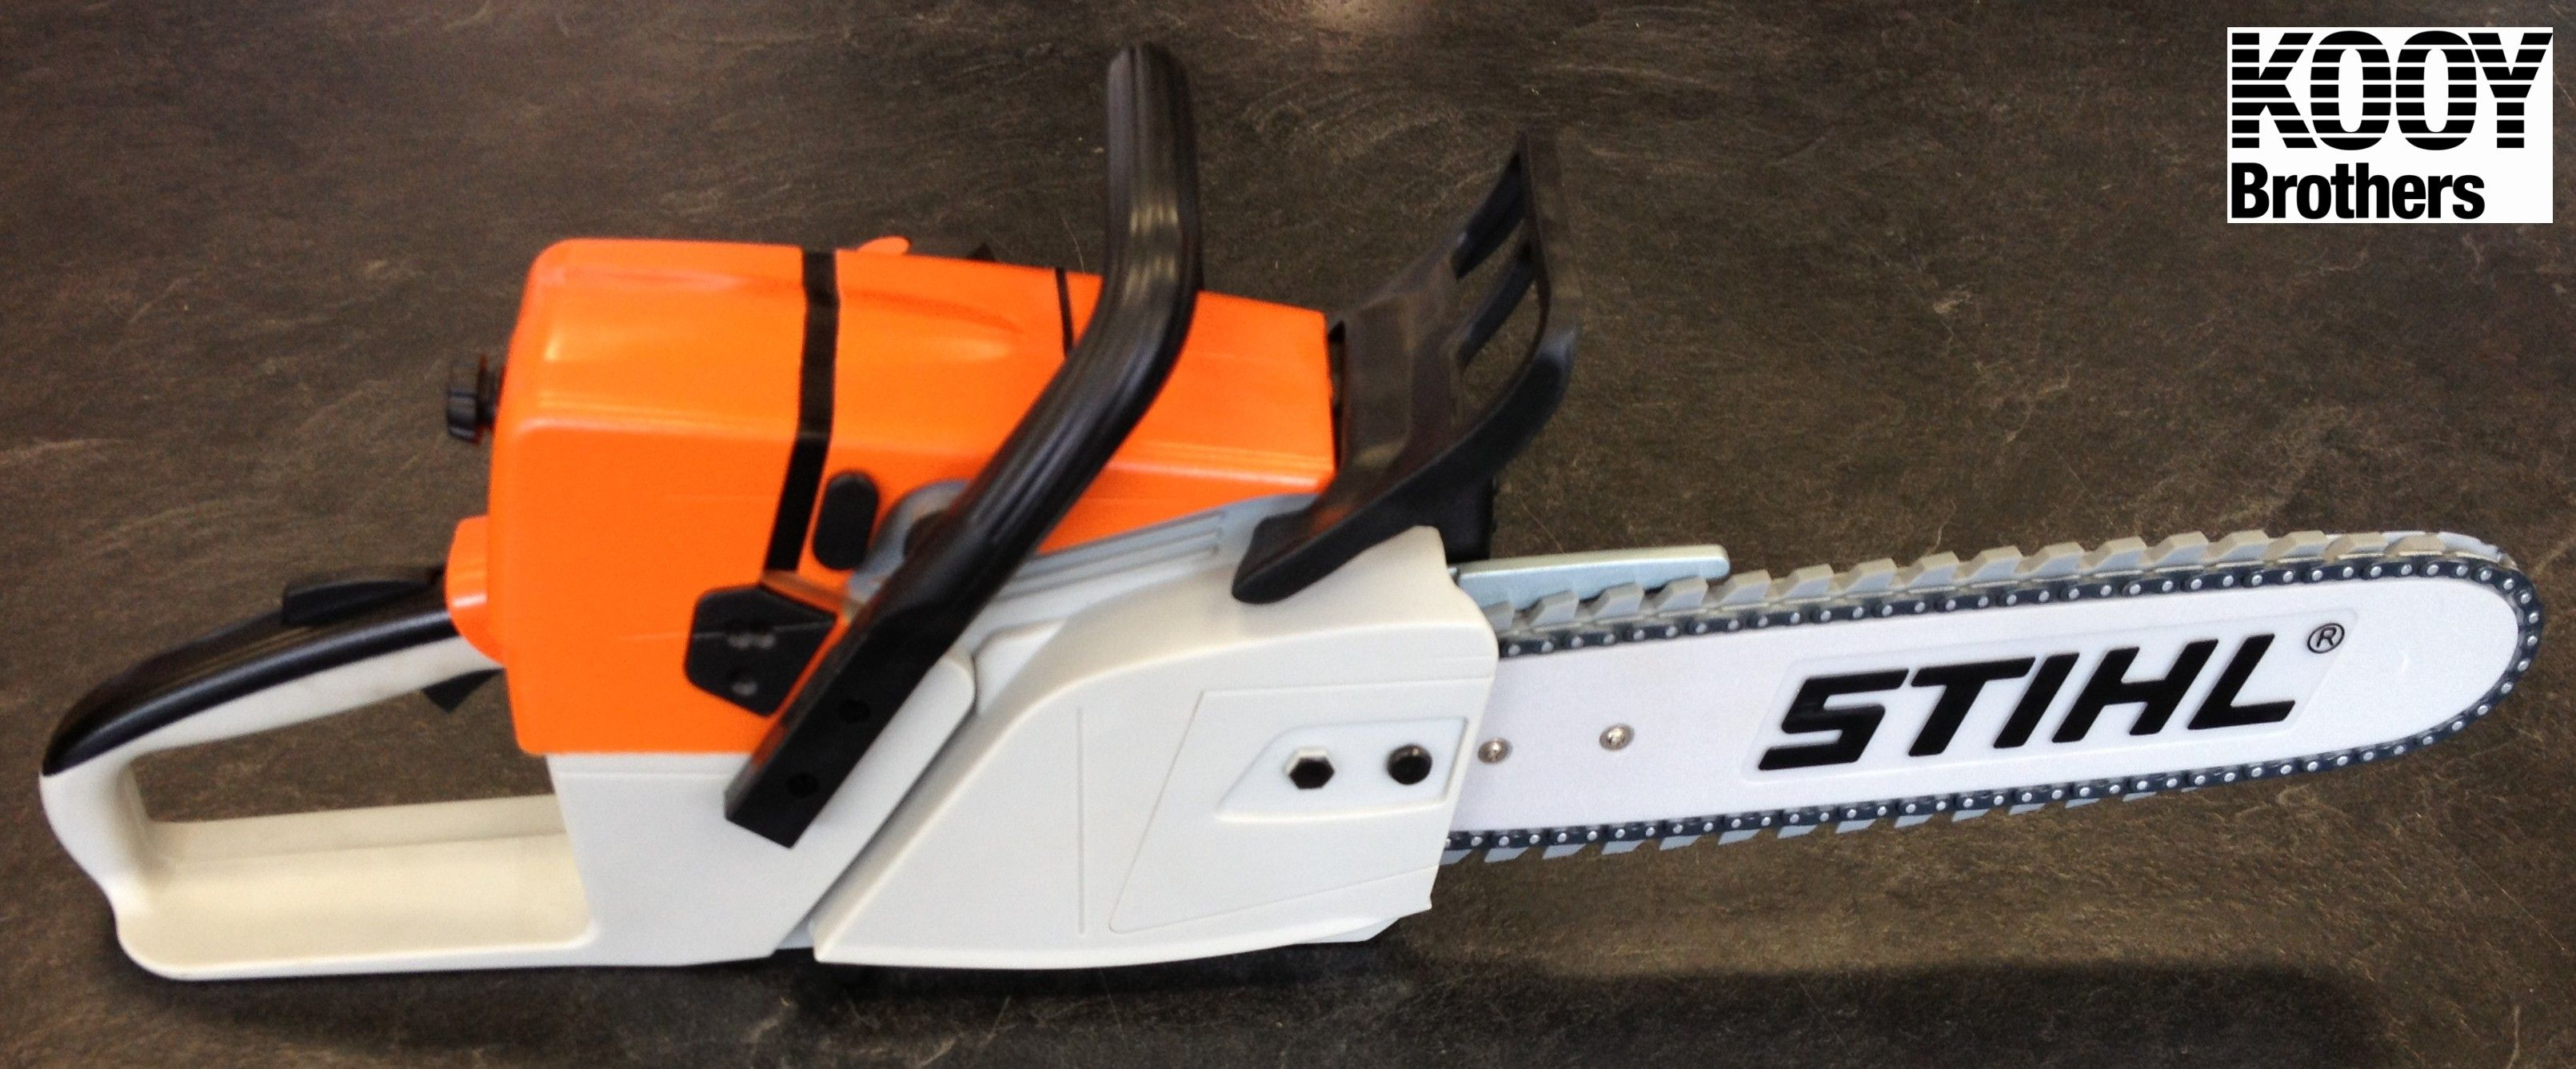 STIHL toy chainsaw model 04649340000